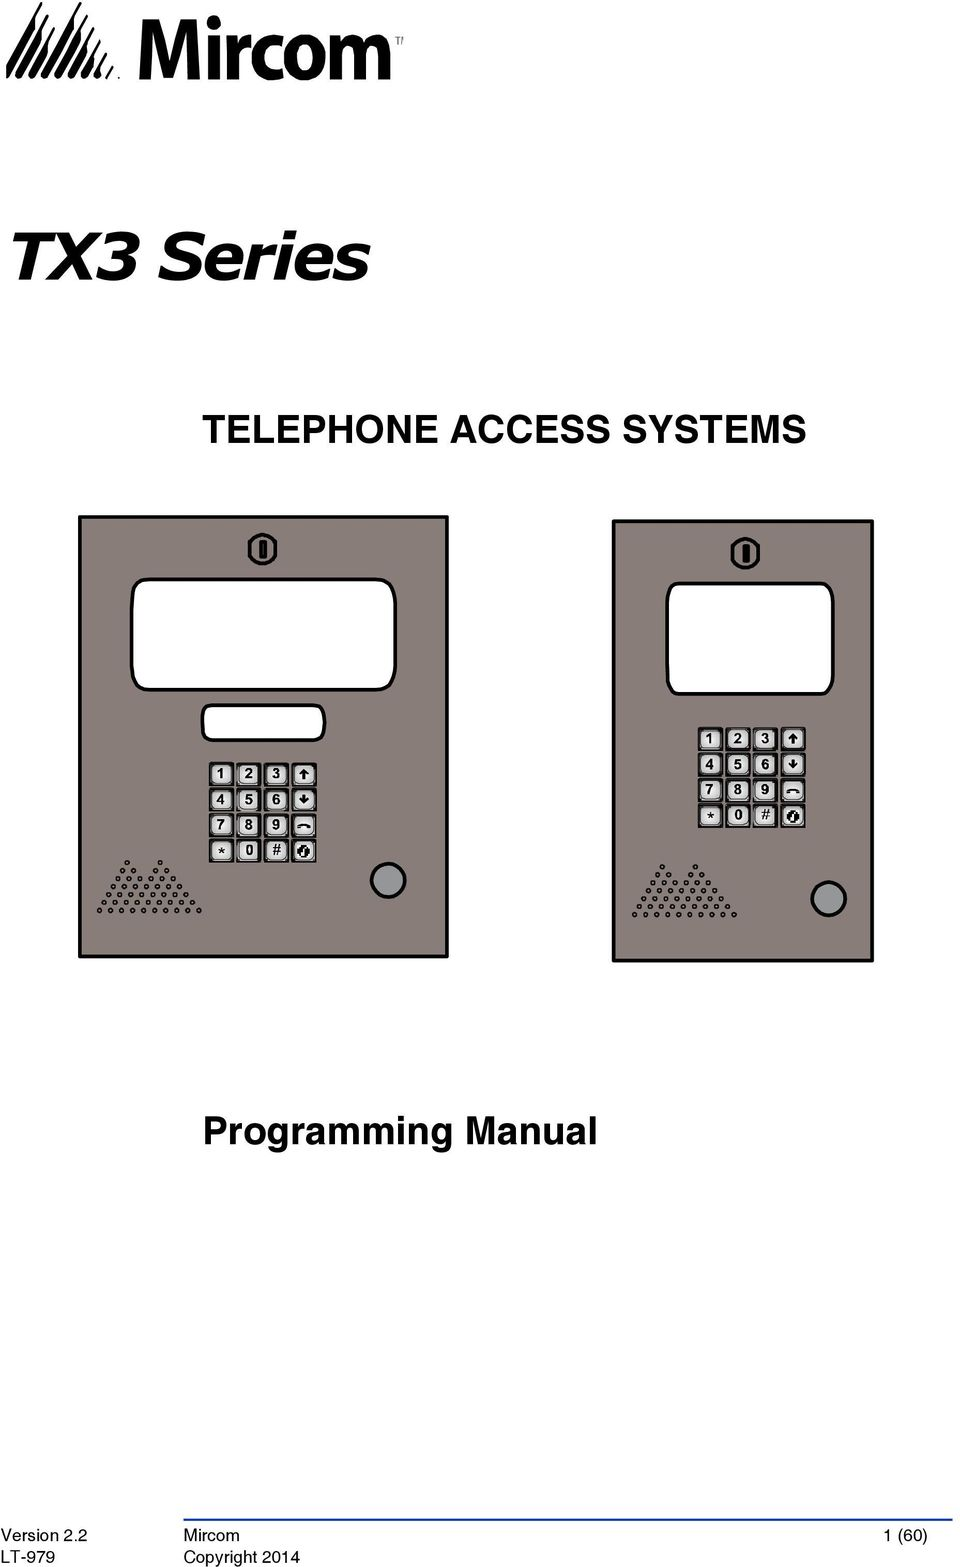 TX3 Series TELEPHONE ACCESS SYSTEMS  Programming Manual - PDF